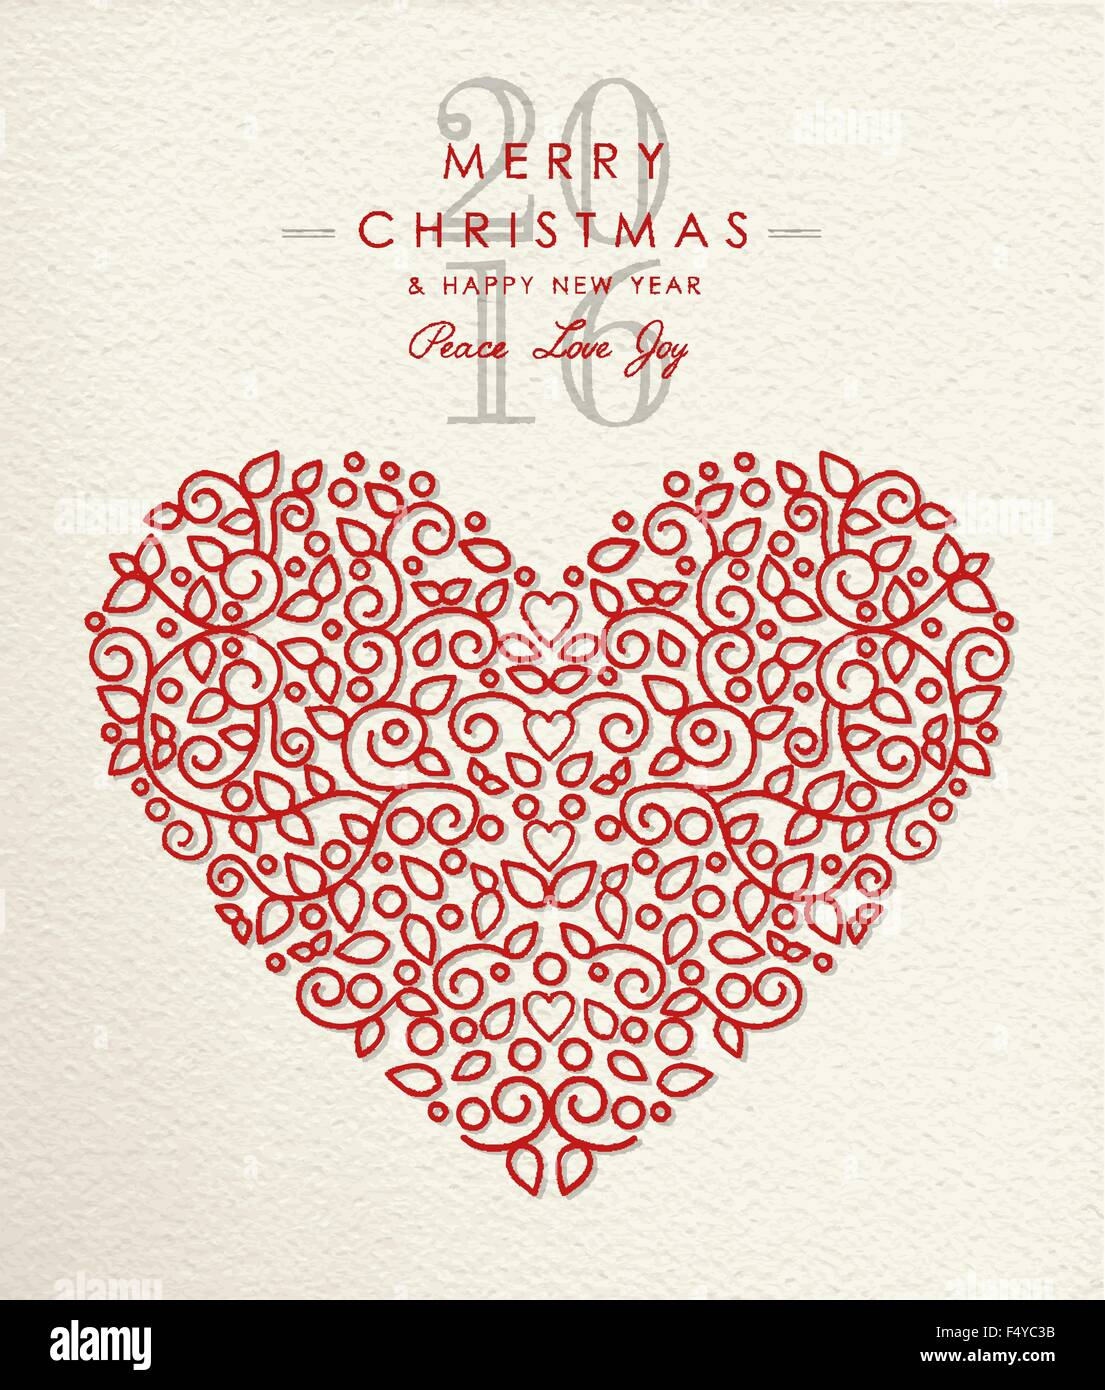 merry christmas happy new year 2016 heart shape in ornament merry christmas happy new year 2016 heart shape in ornament outline style holiday love